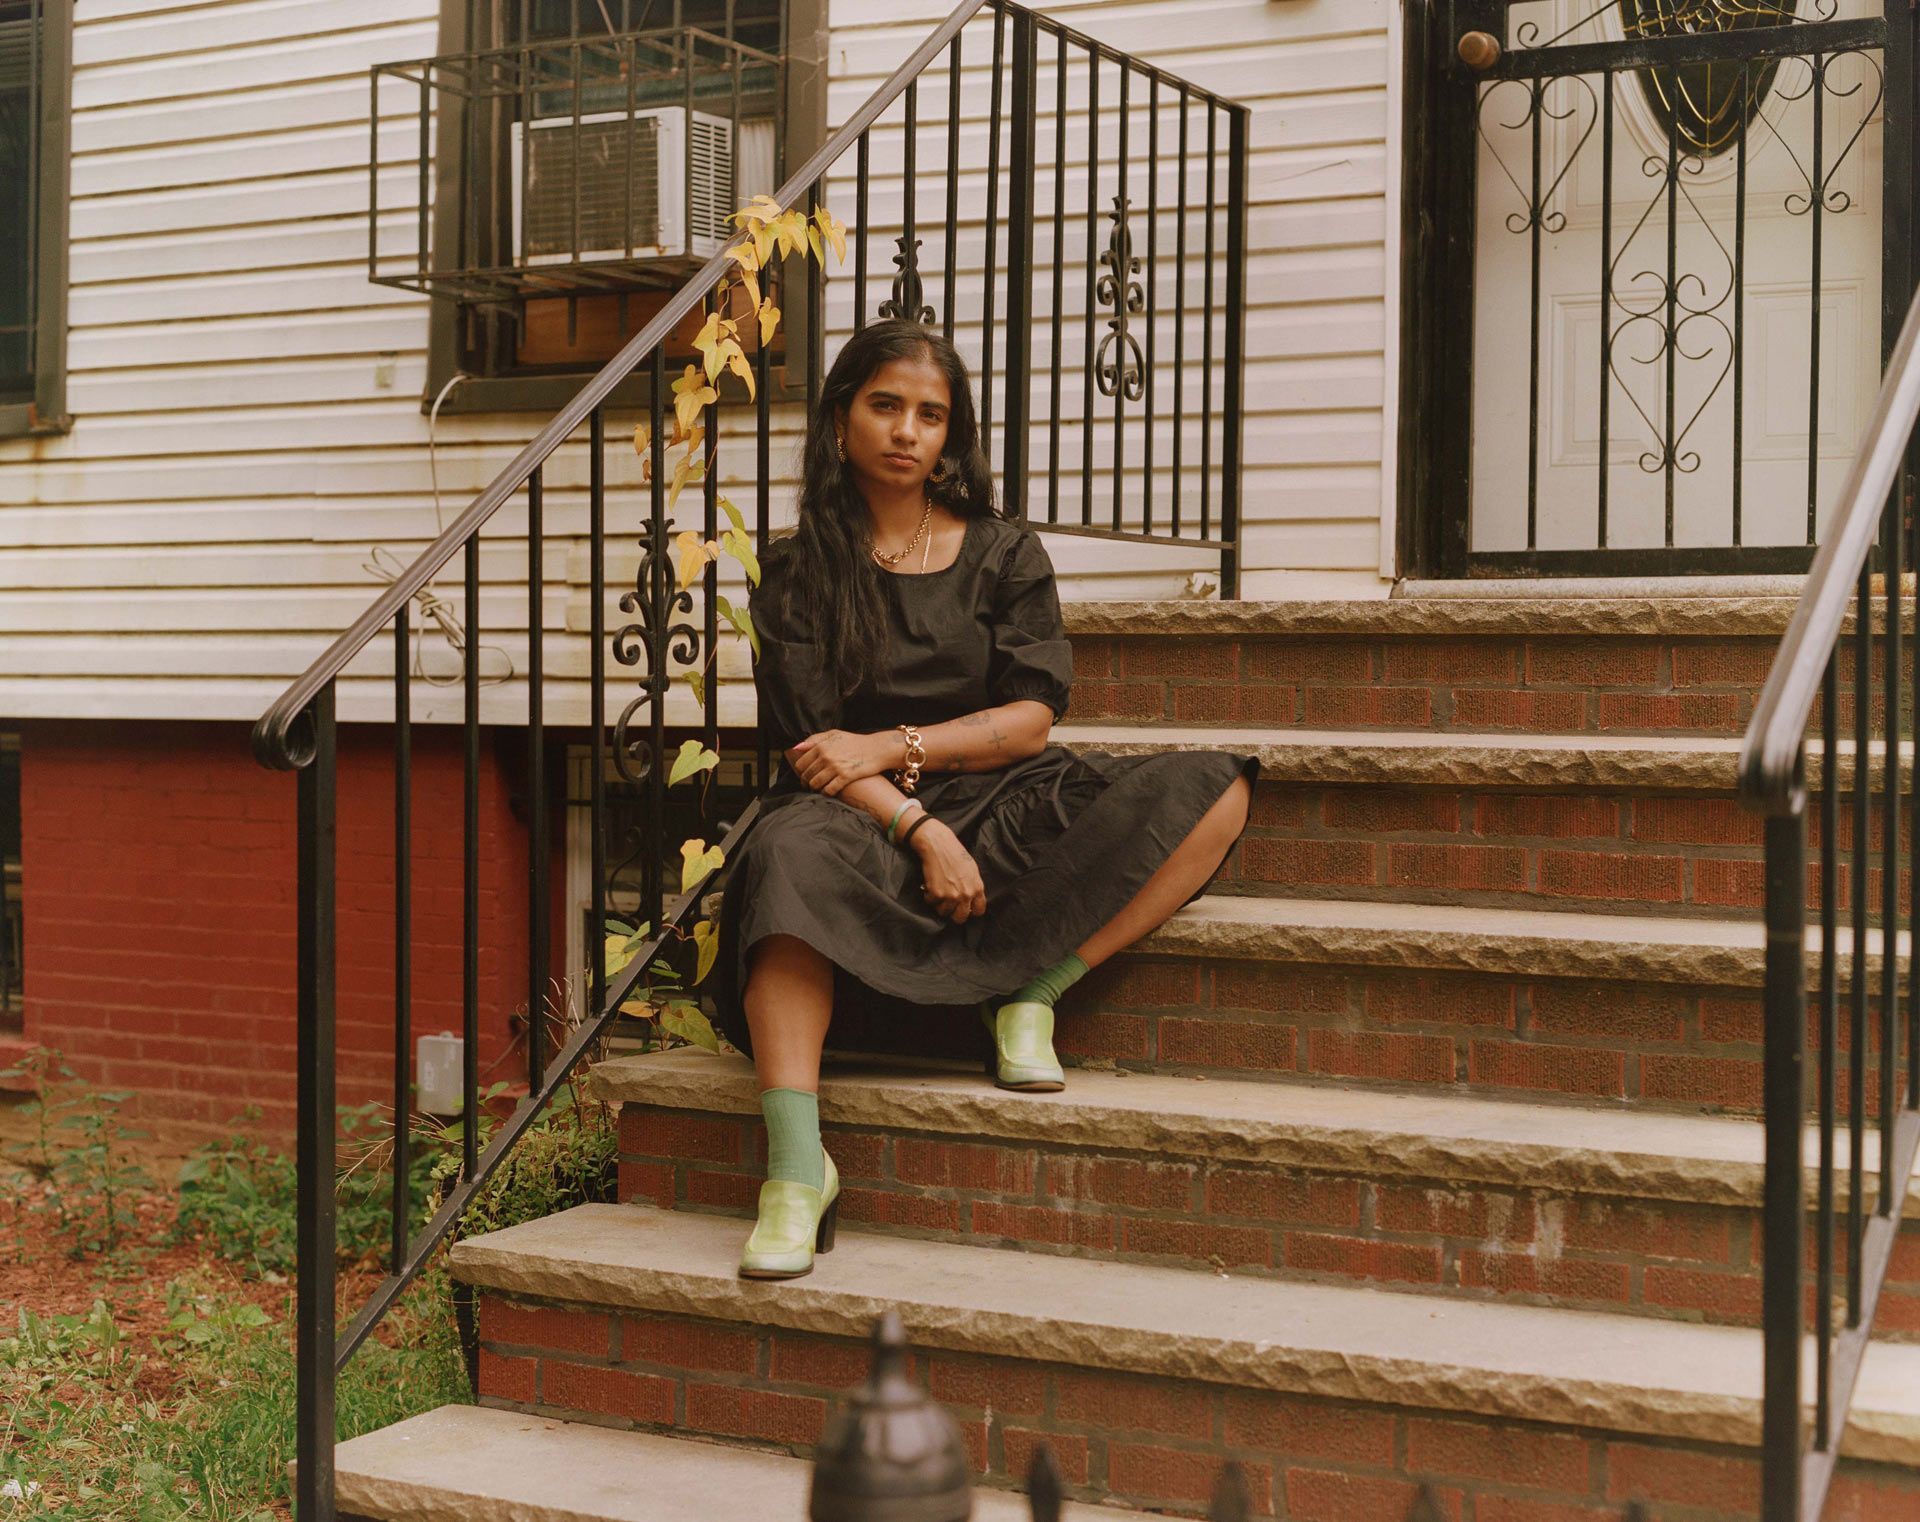 writer Fariha Roisin sitting on the stairs in front of her apartment wearing black dress green socks and green shoes looking at camera photographed by Oumayma B. Tanfous for Levi's